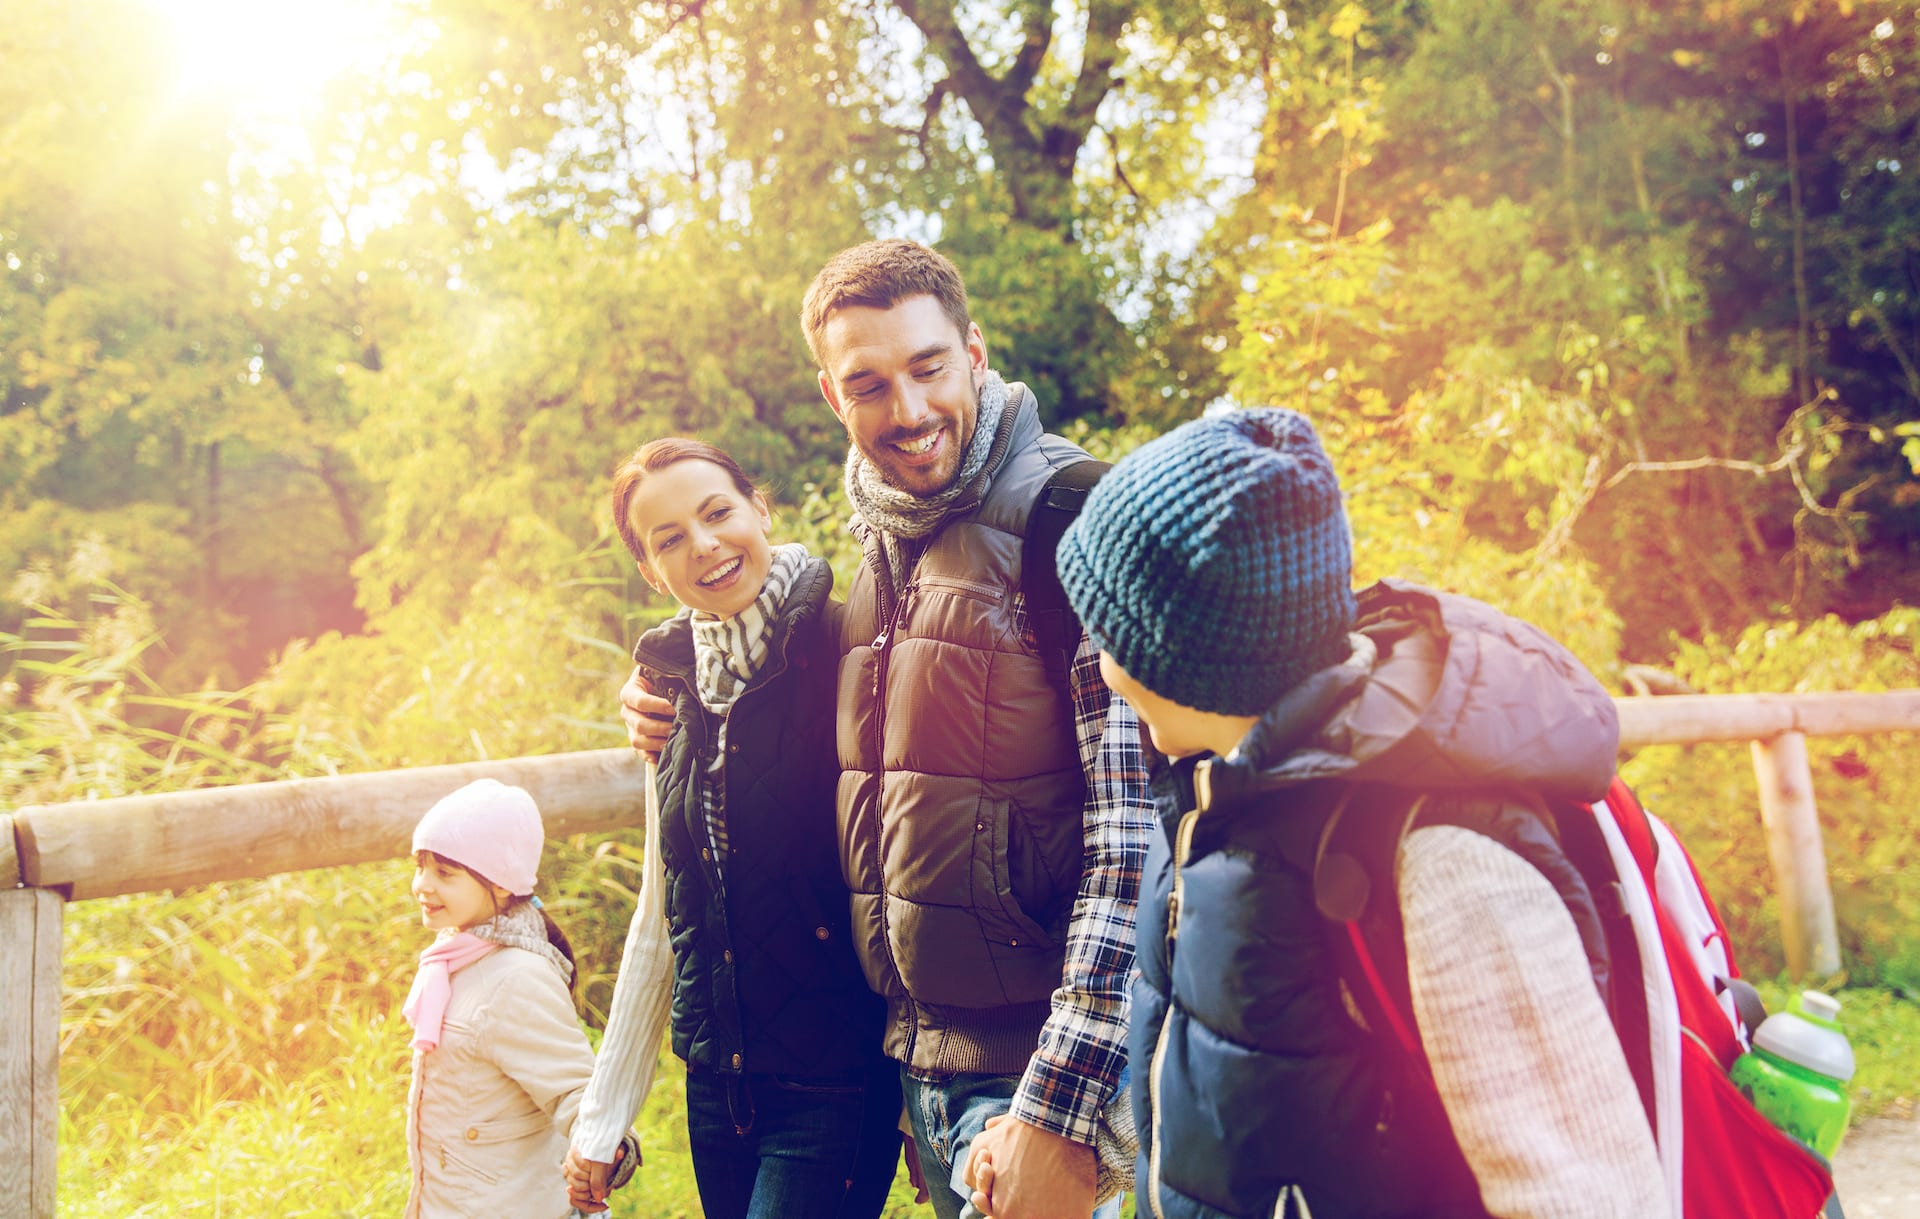 travel, tourism, hike and people concept - happy family with backpacks hiking in woods